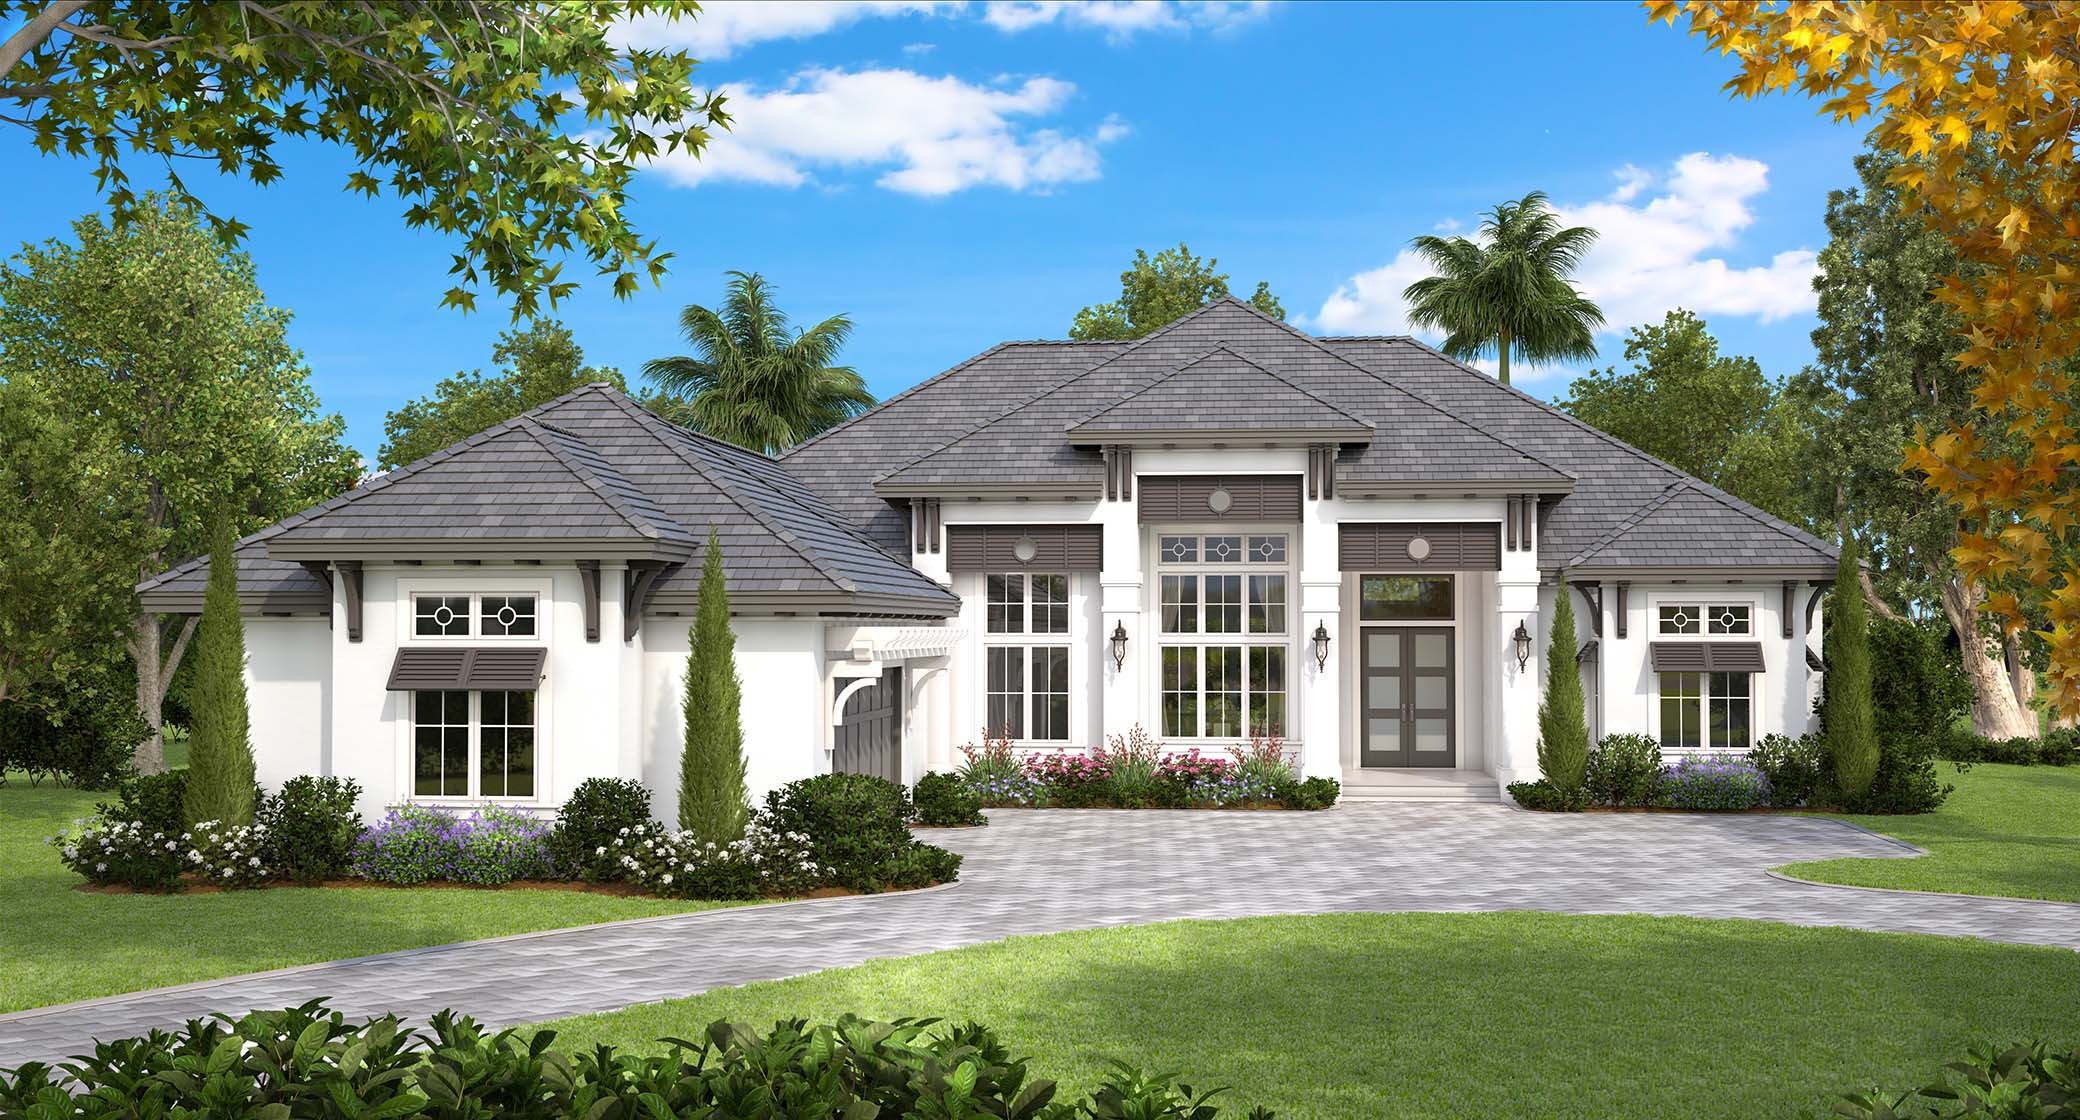 Coastal european house plan 175 1130 4 bedrm 4089 sq ft for Home house plans